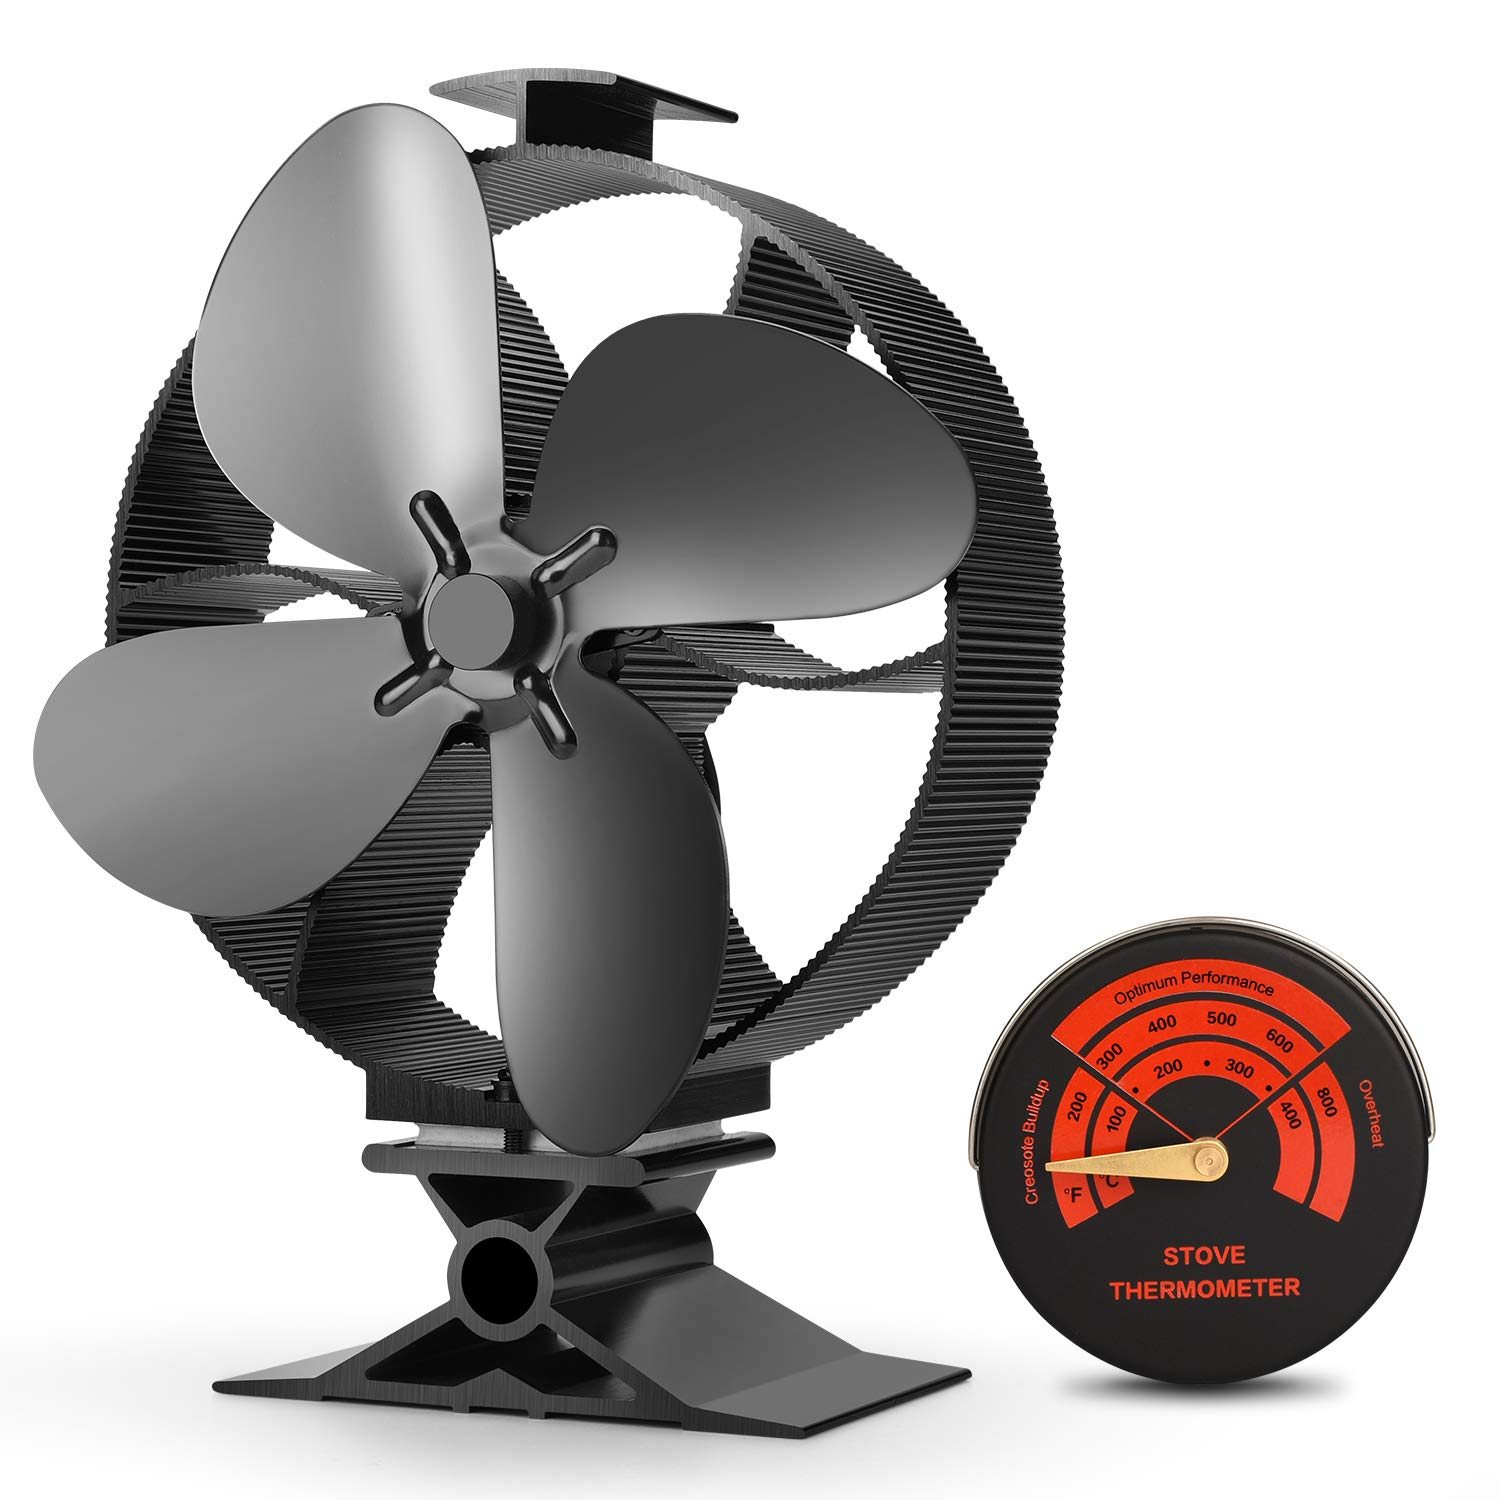 CWLAKON 2019 Upgrade Designed Silent Operation 4-Blades Large Size Heat Powered Stove Fan with Stove Thermometer for Wood/Log Burner/Fireplace,Eco Friendly and Efficient Heat Distribution by CWLAKON